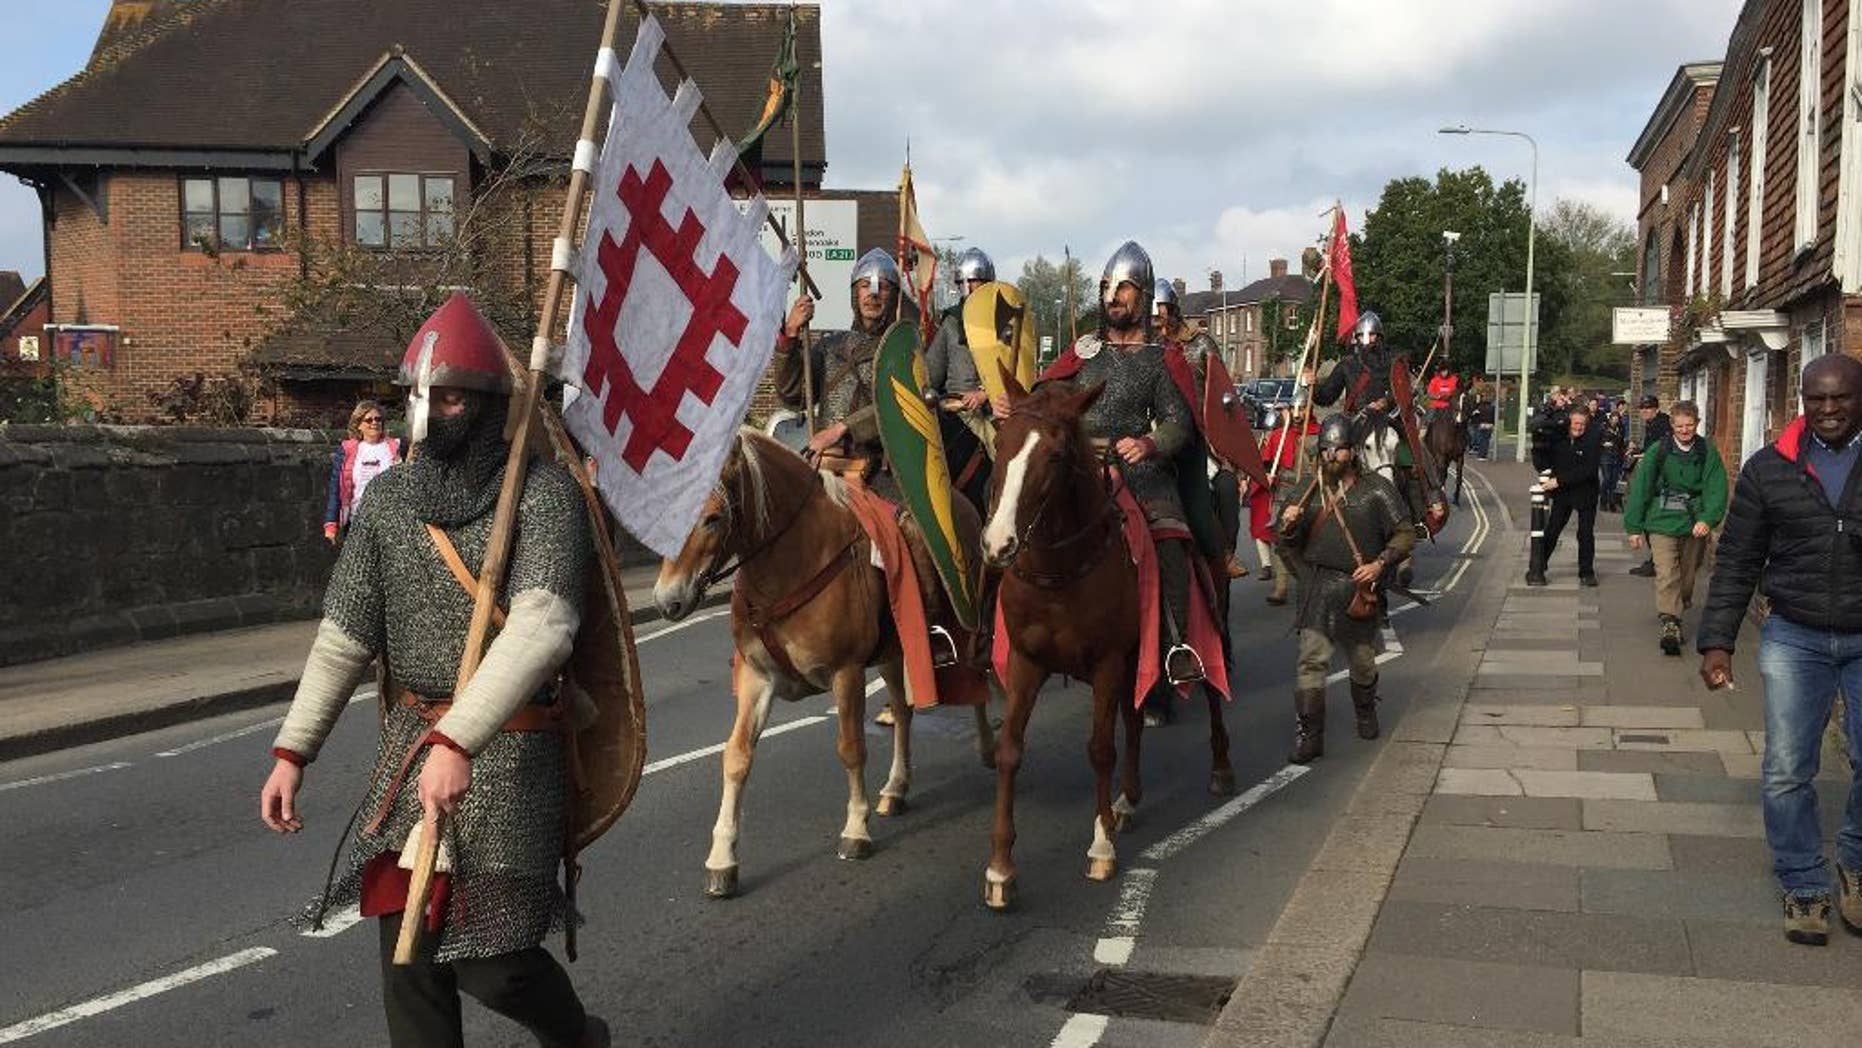 A group of historical re-enactors arrive in Battle, near Hastings, England, Friday Oct. 14, 2016, ending their 300-mile cross-country journey ready to mark the Battle of Hastings which was originaly fought 950-years ago.  The band of re-enactor enthusiasts set out from York, central England, on foot and horseback to simulate the journey by King Harold before the battle in 1066, when Normans under William the Conqueror defeated the English at the Battle of Hastings. (Tom Pugh / PA via AP)